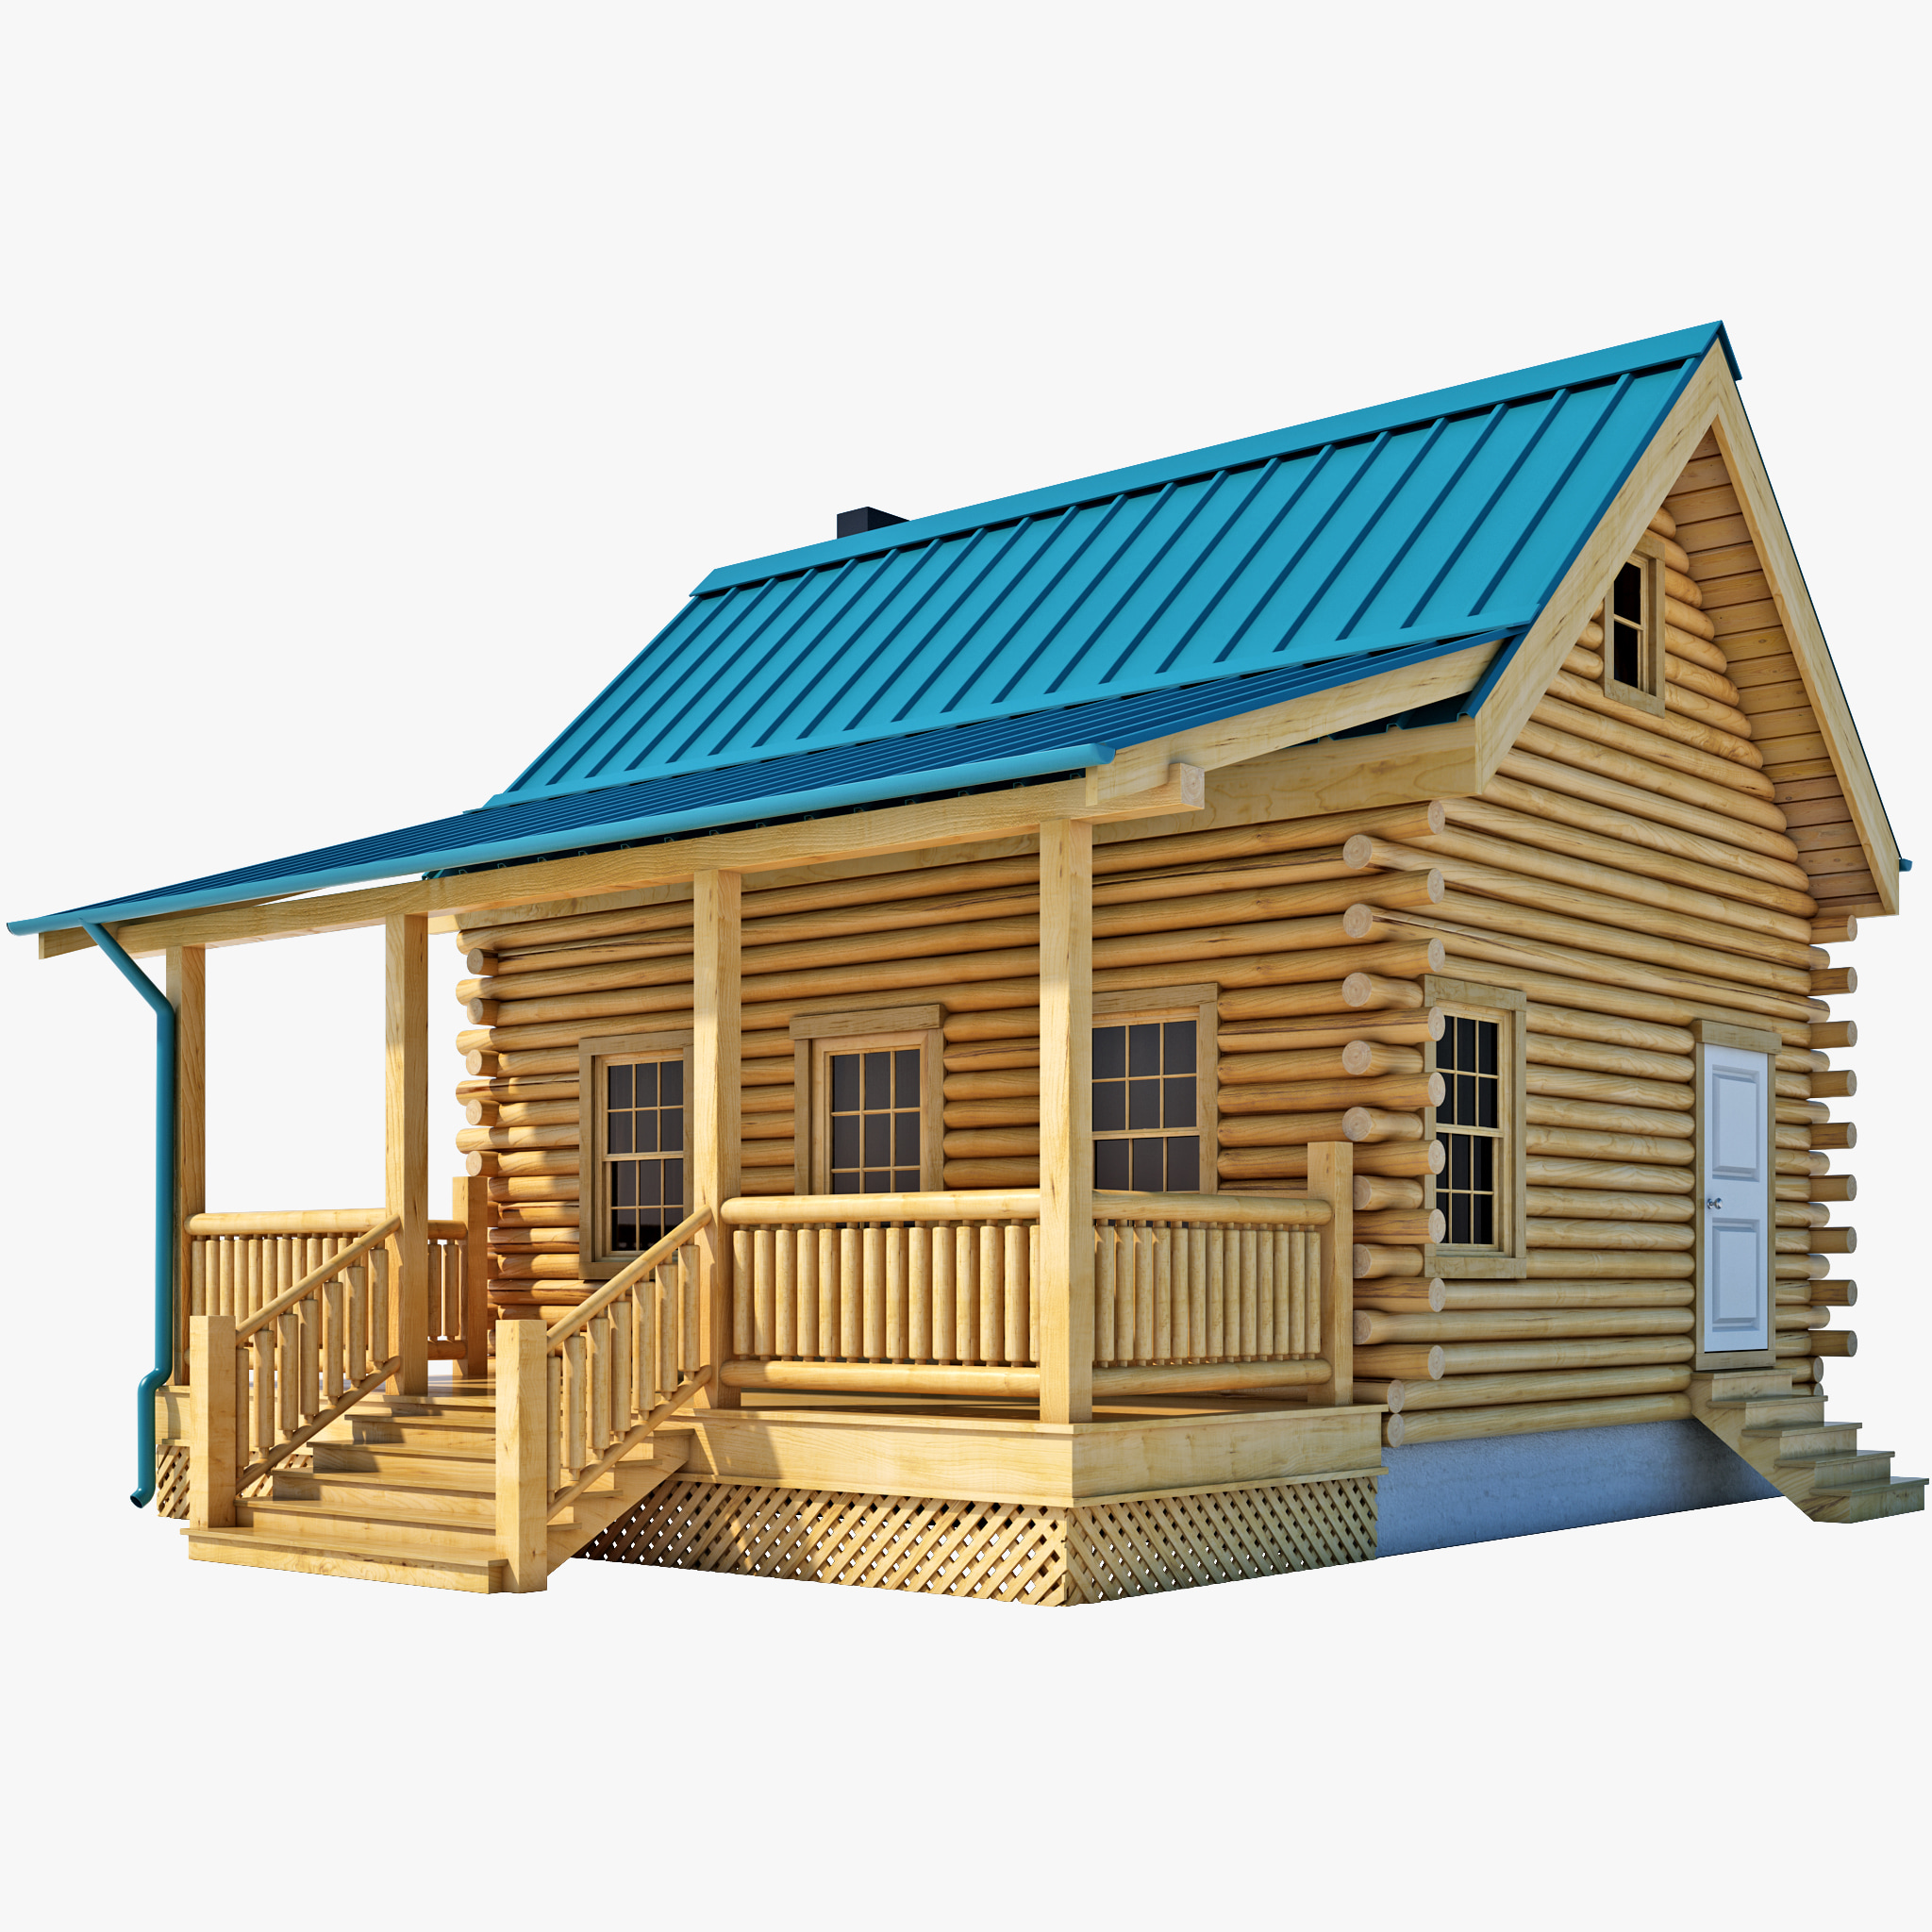 3d log cabin house House 3d model